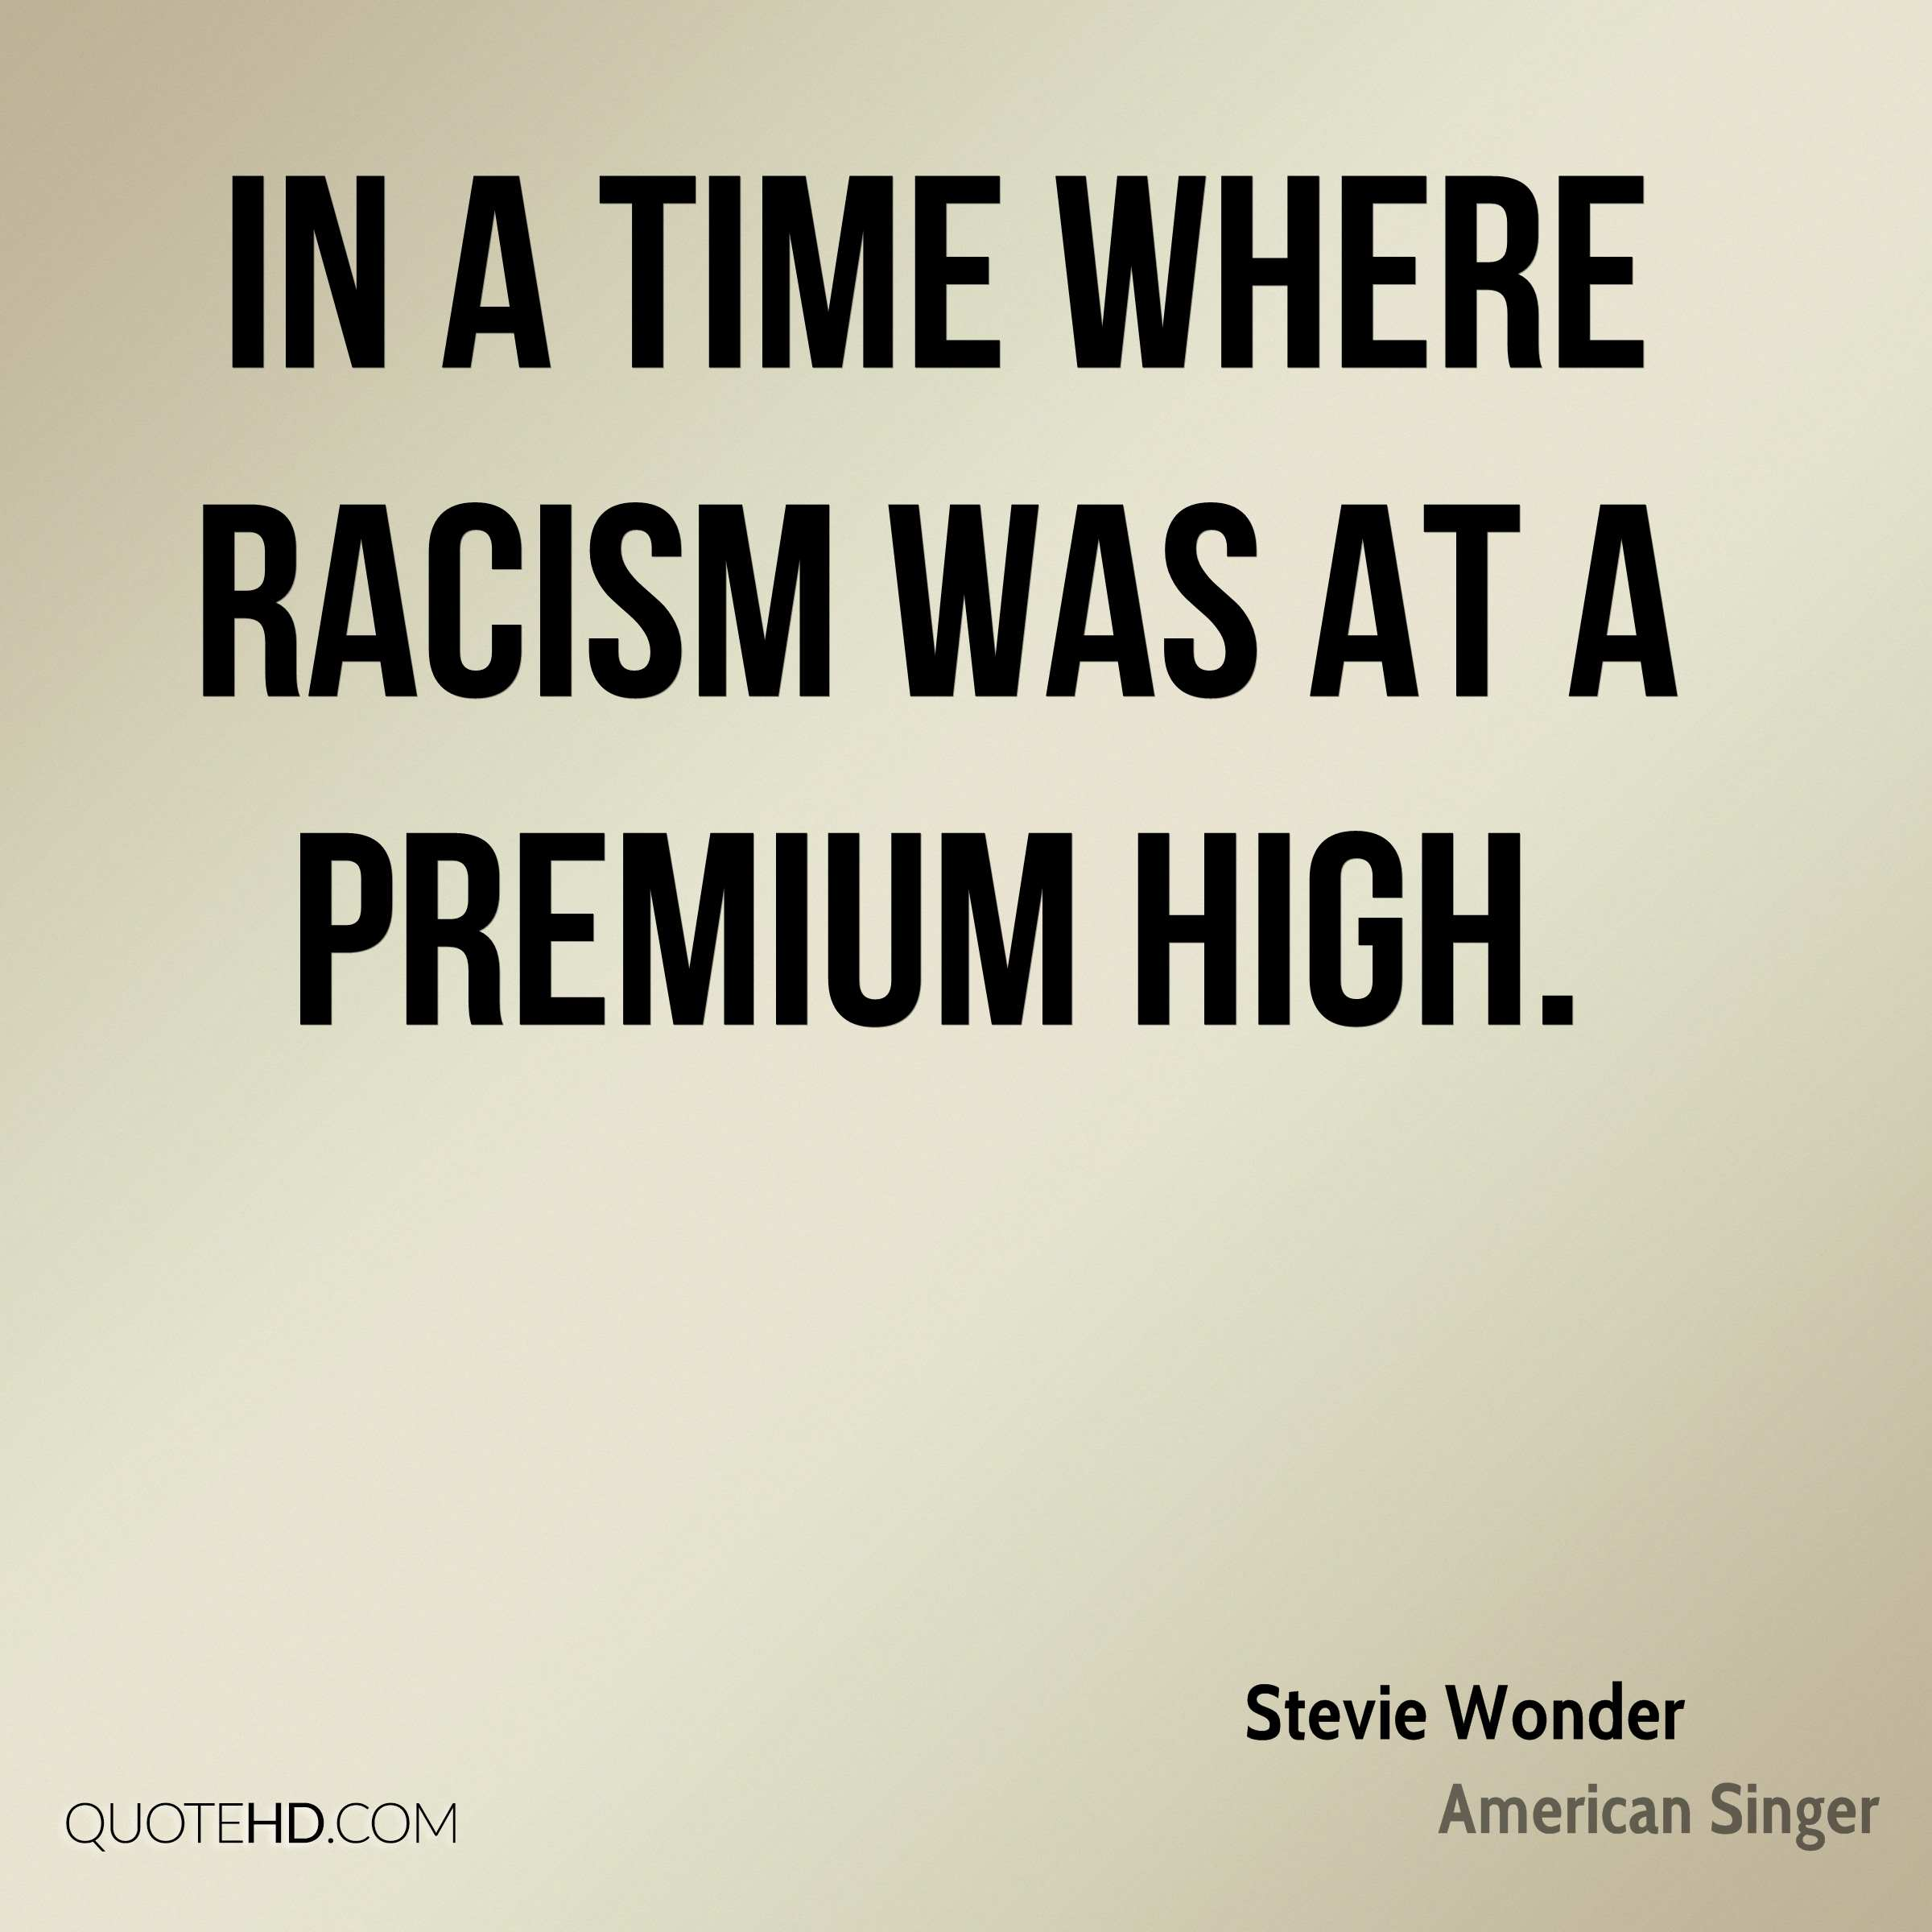 In a time where racism was at a premium high.